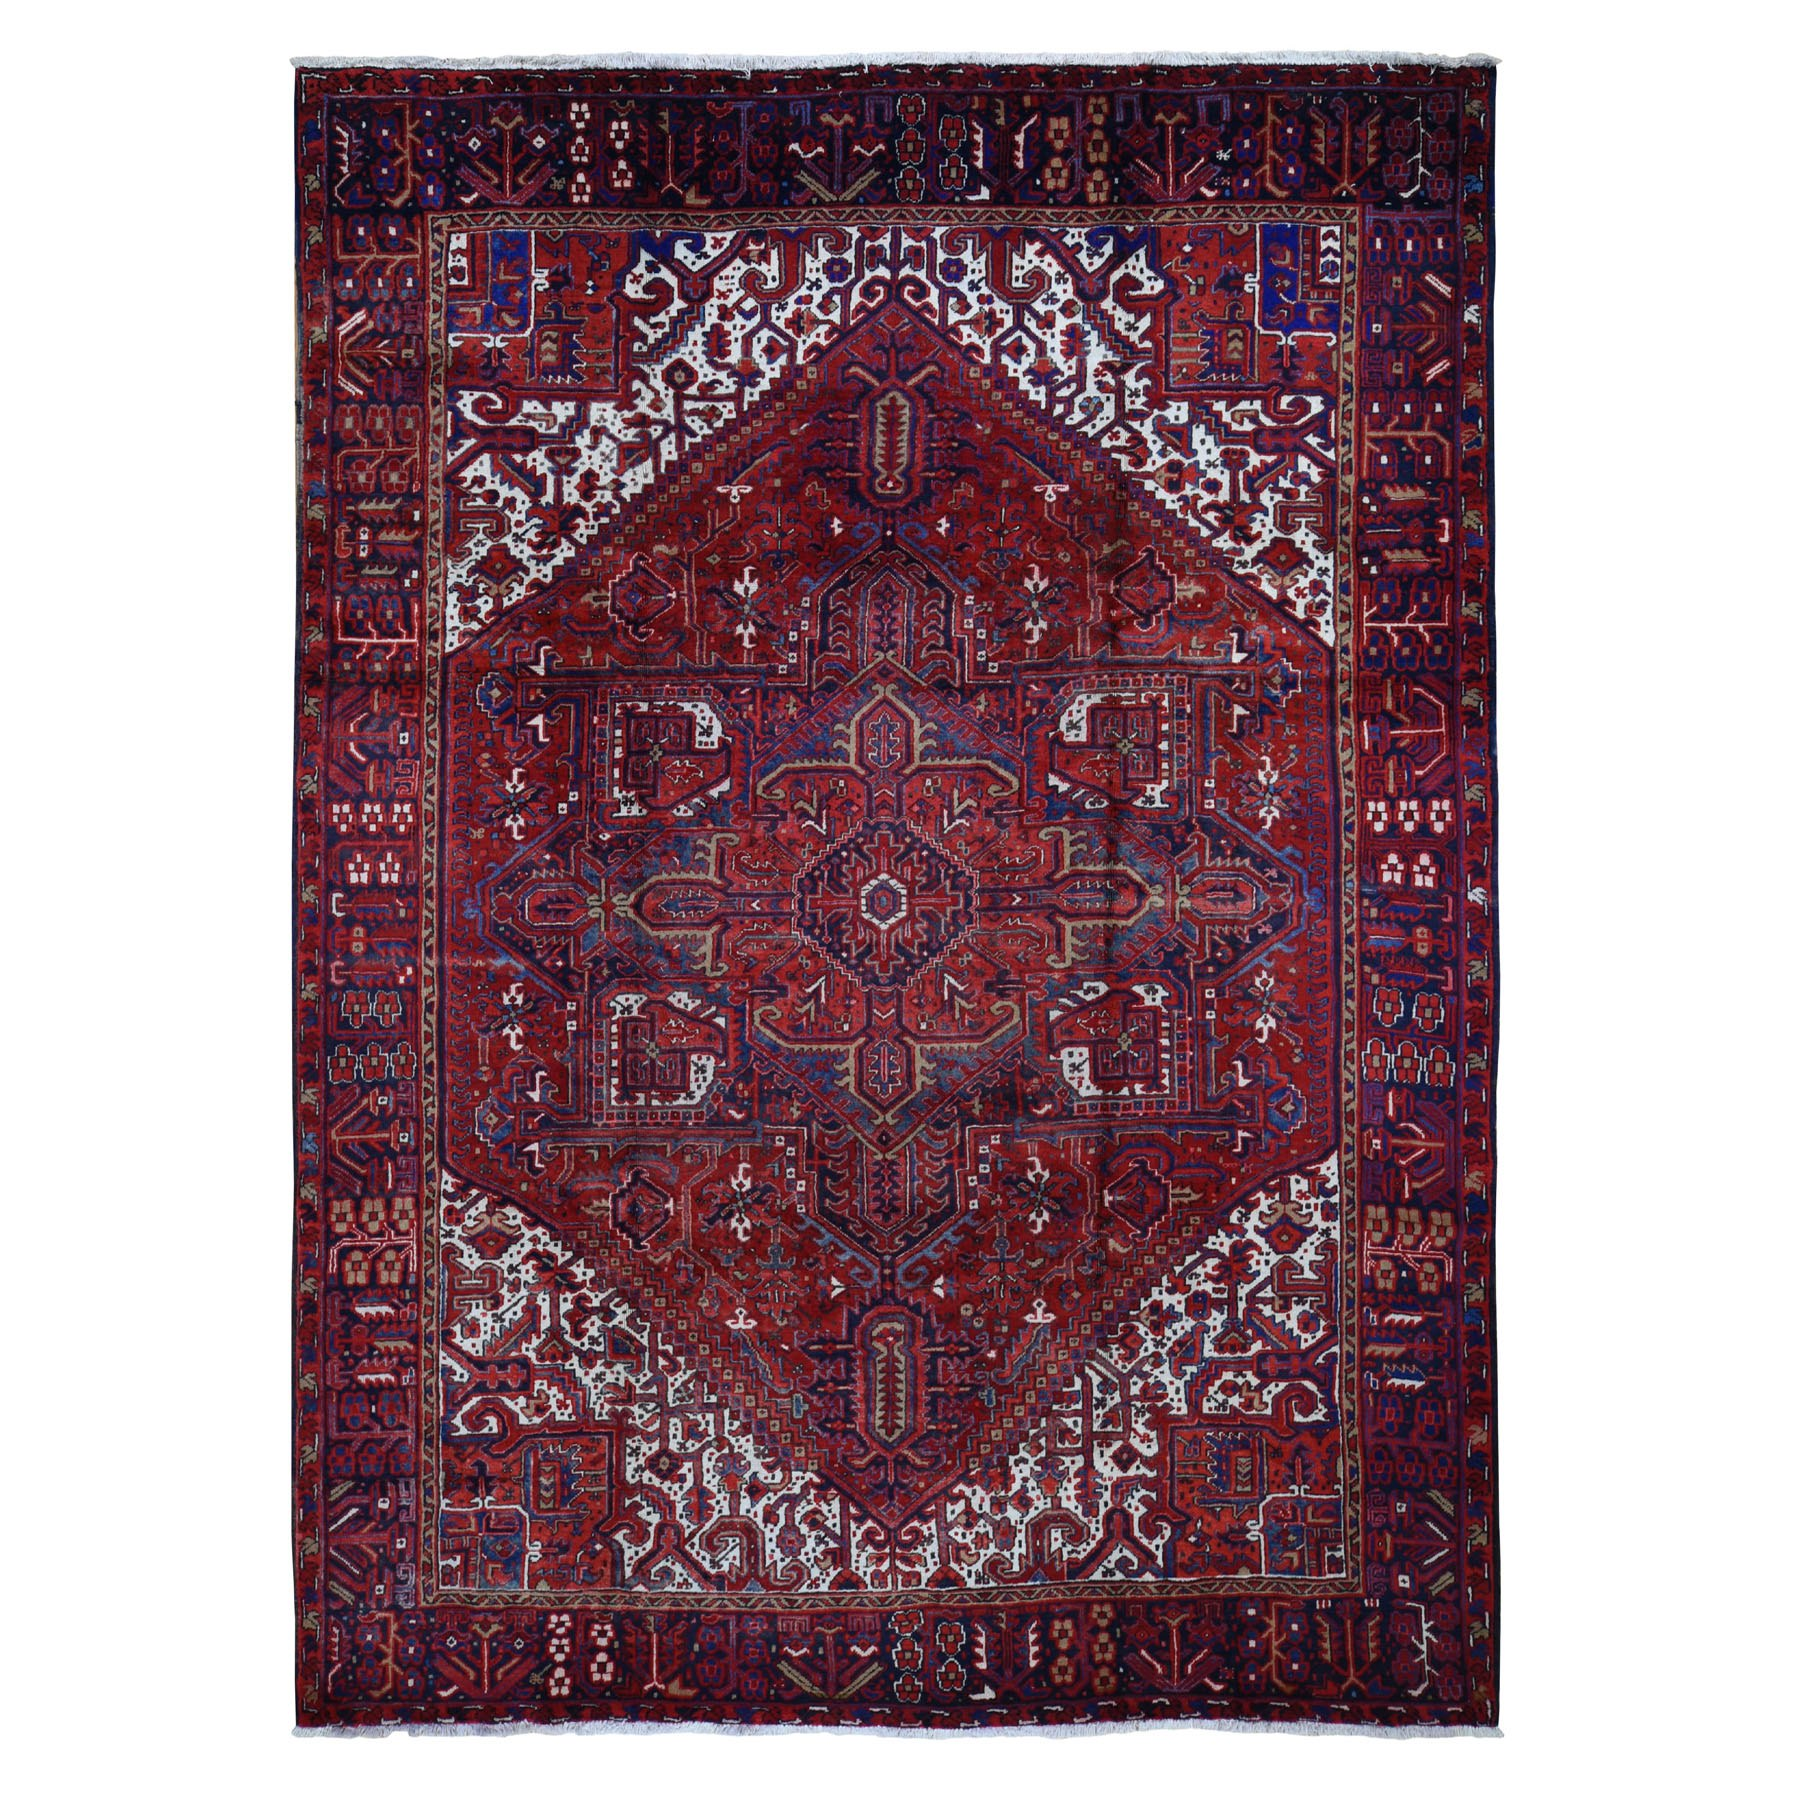 "8'7""x11'6"" Red Semi Antique Persian Heriz Geometric Design Thick and Plush Hand Knotted Oriental Rug"